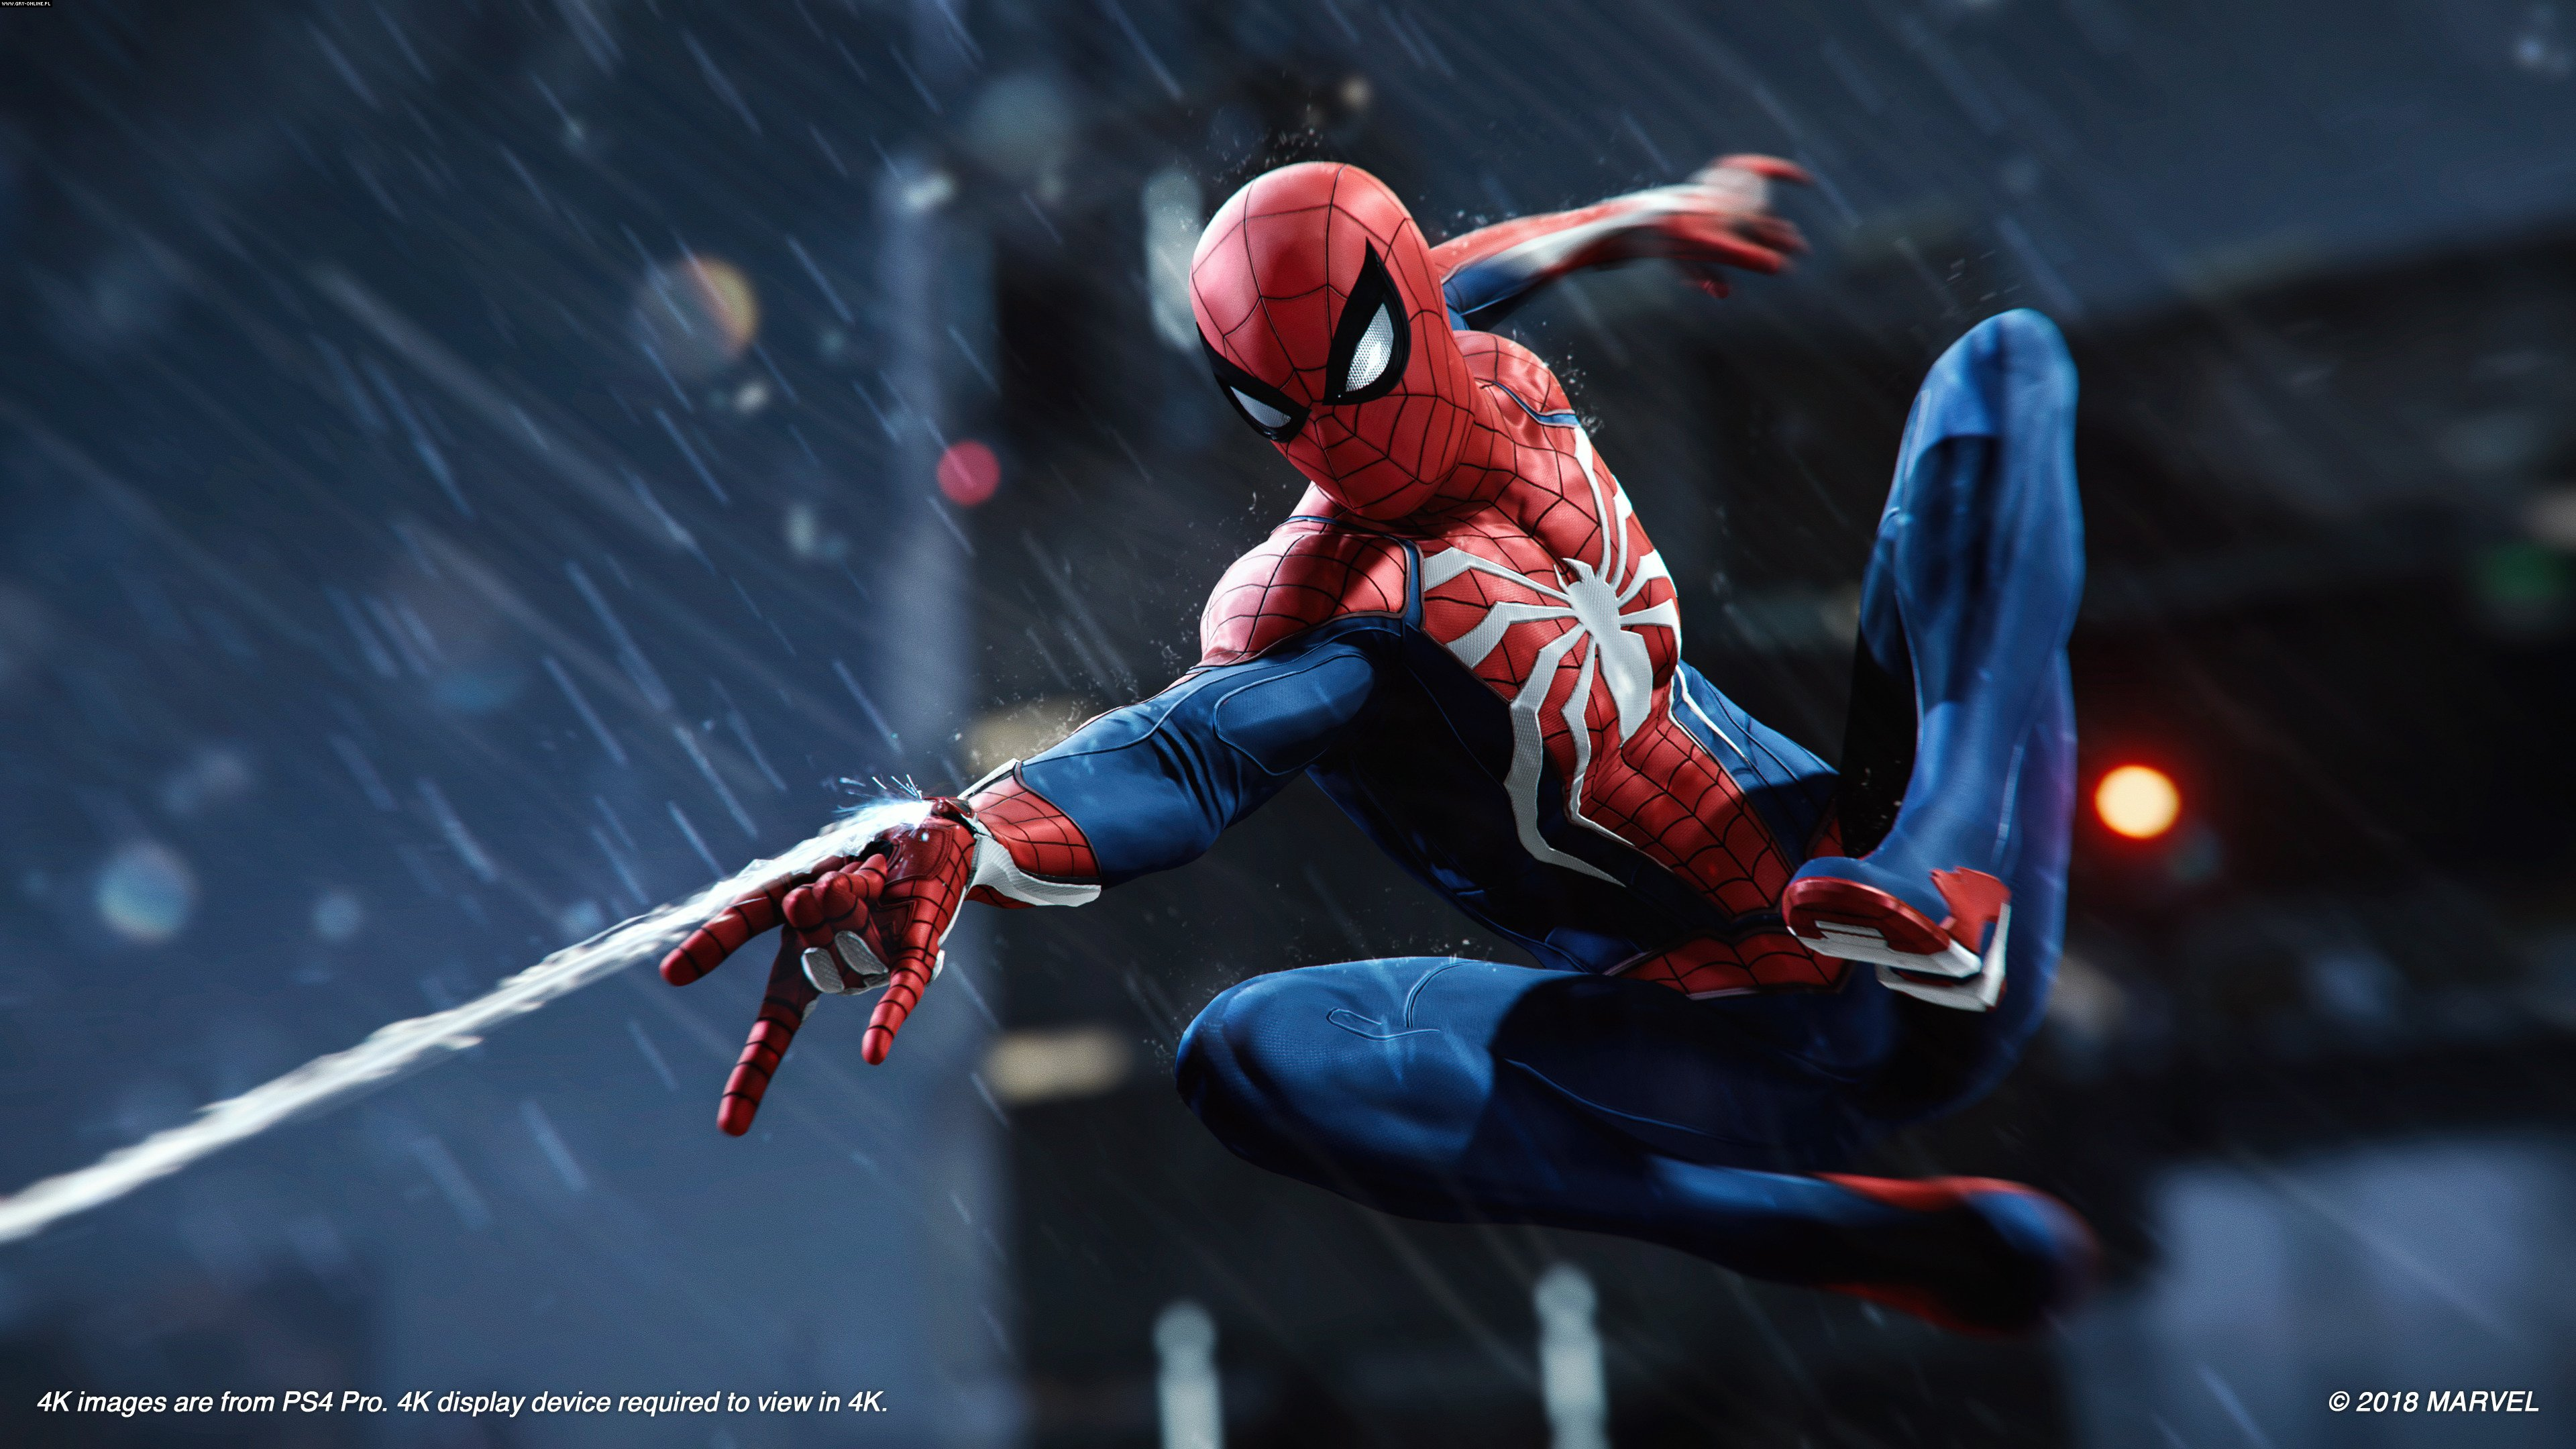 Spider-Man PS4 Games Image 23/47, Insomniac Games, Sony Interactive Entertainment